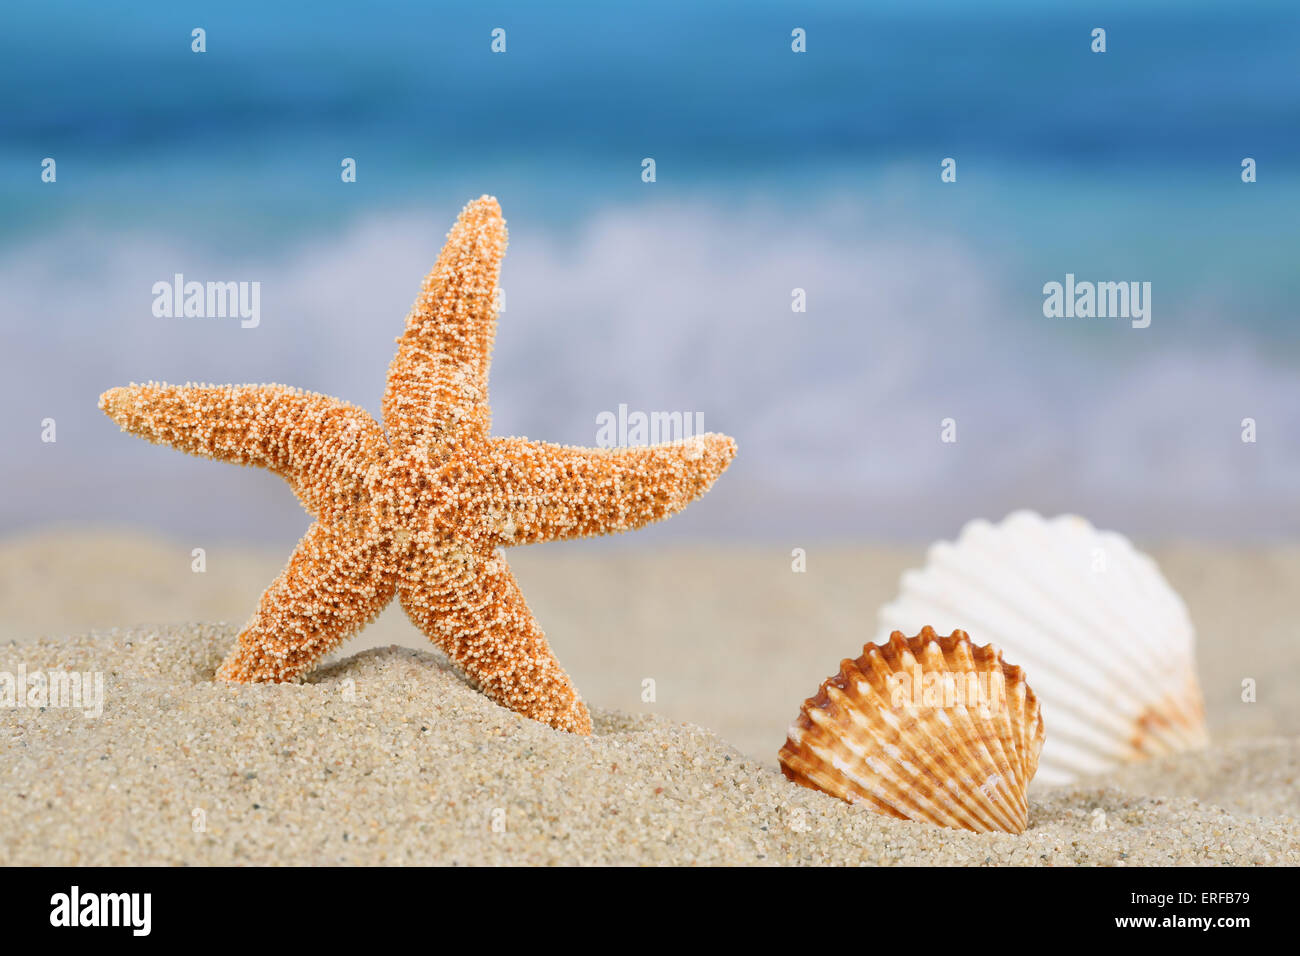 Beach scene in summer on vacation with sand, sea shells and stars, copyspace - Stock Image